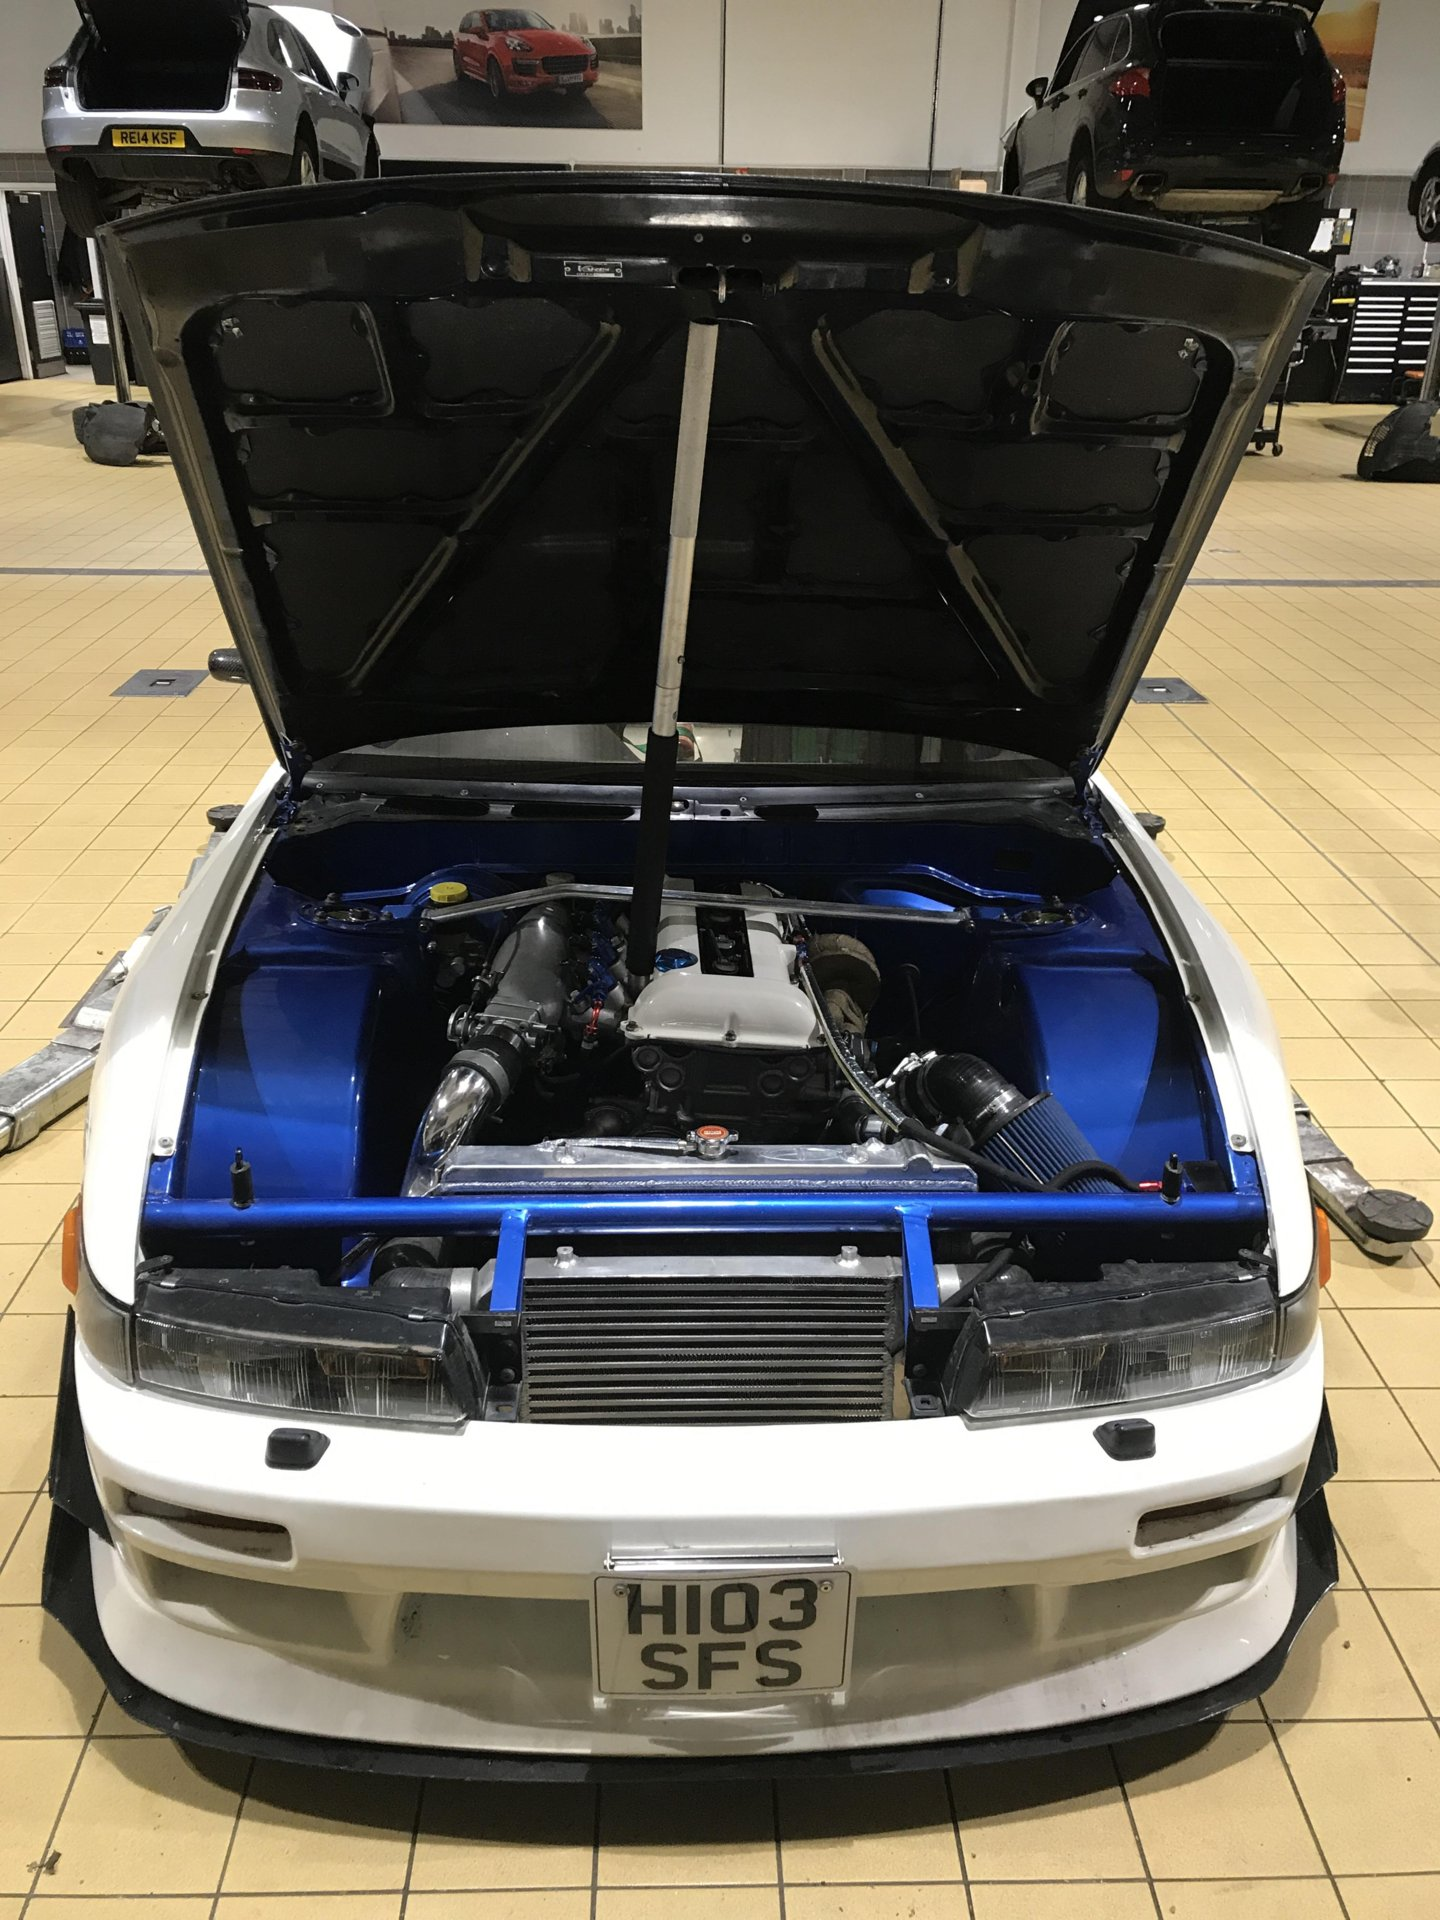 Hid Lights For Cars >> For Sale - Nissan Silvia Ps13 | Driftworks Forum